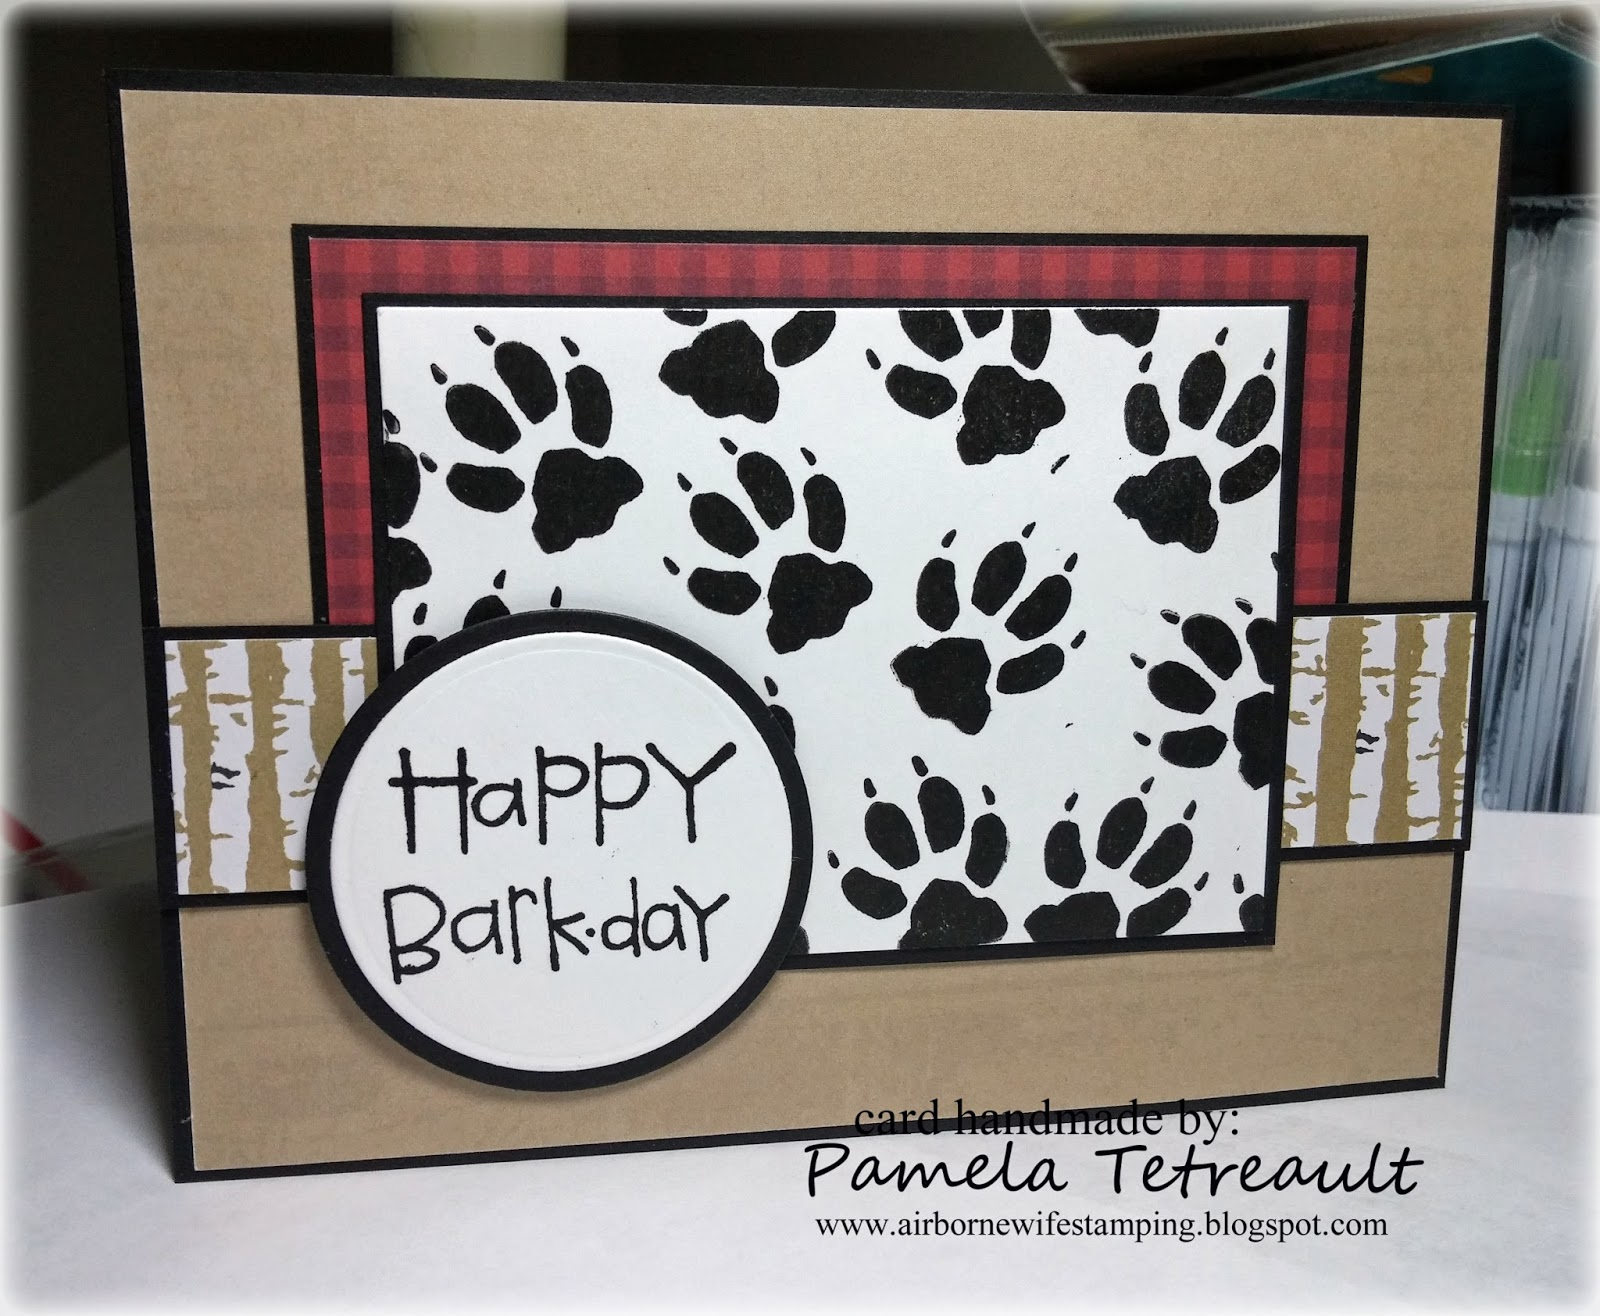 Airbornewifes Stamping Spot HAPPY BARKDAY Happy Birthday